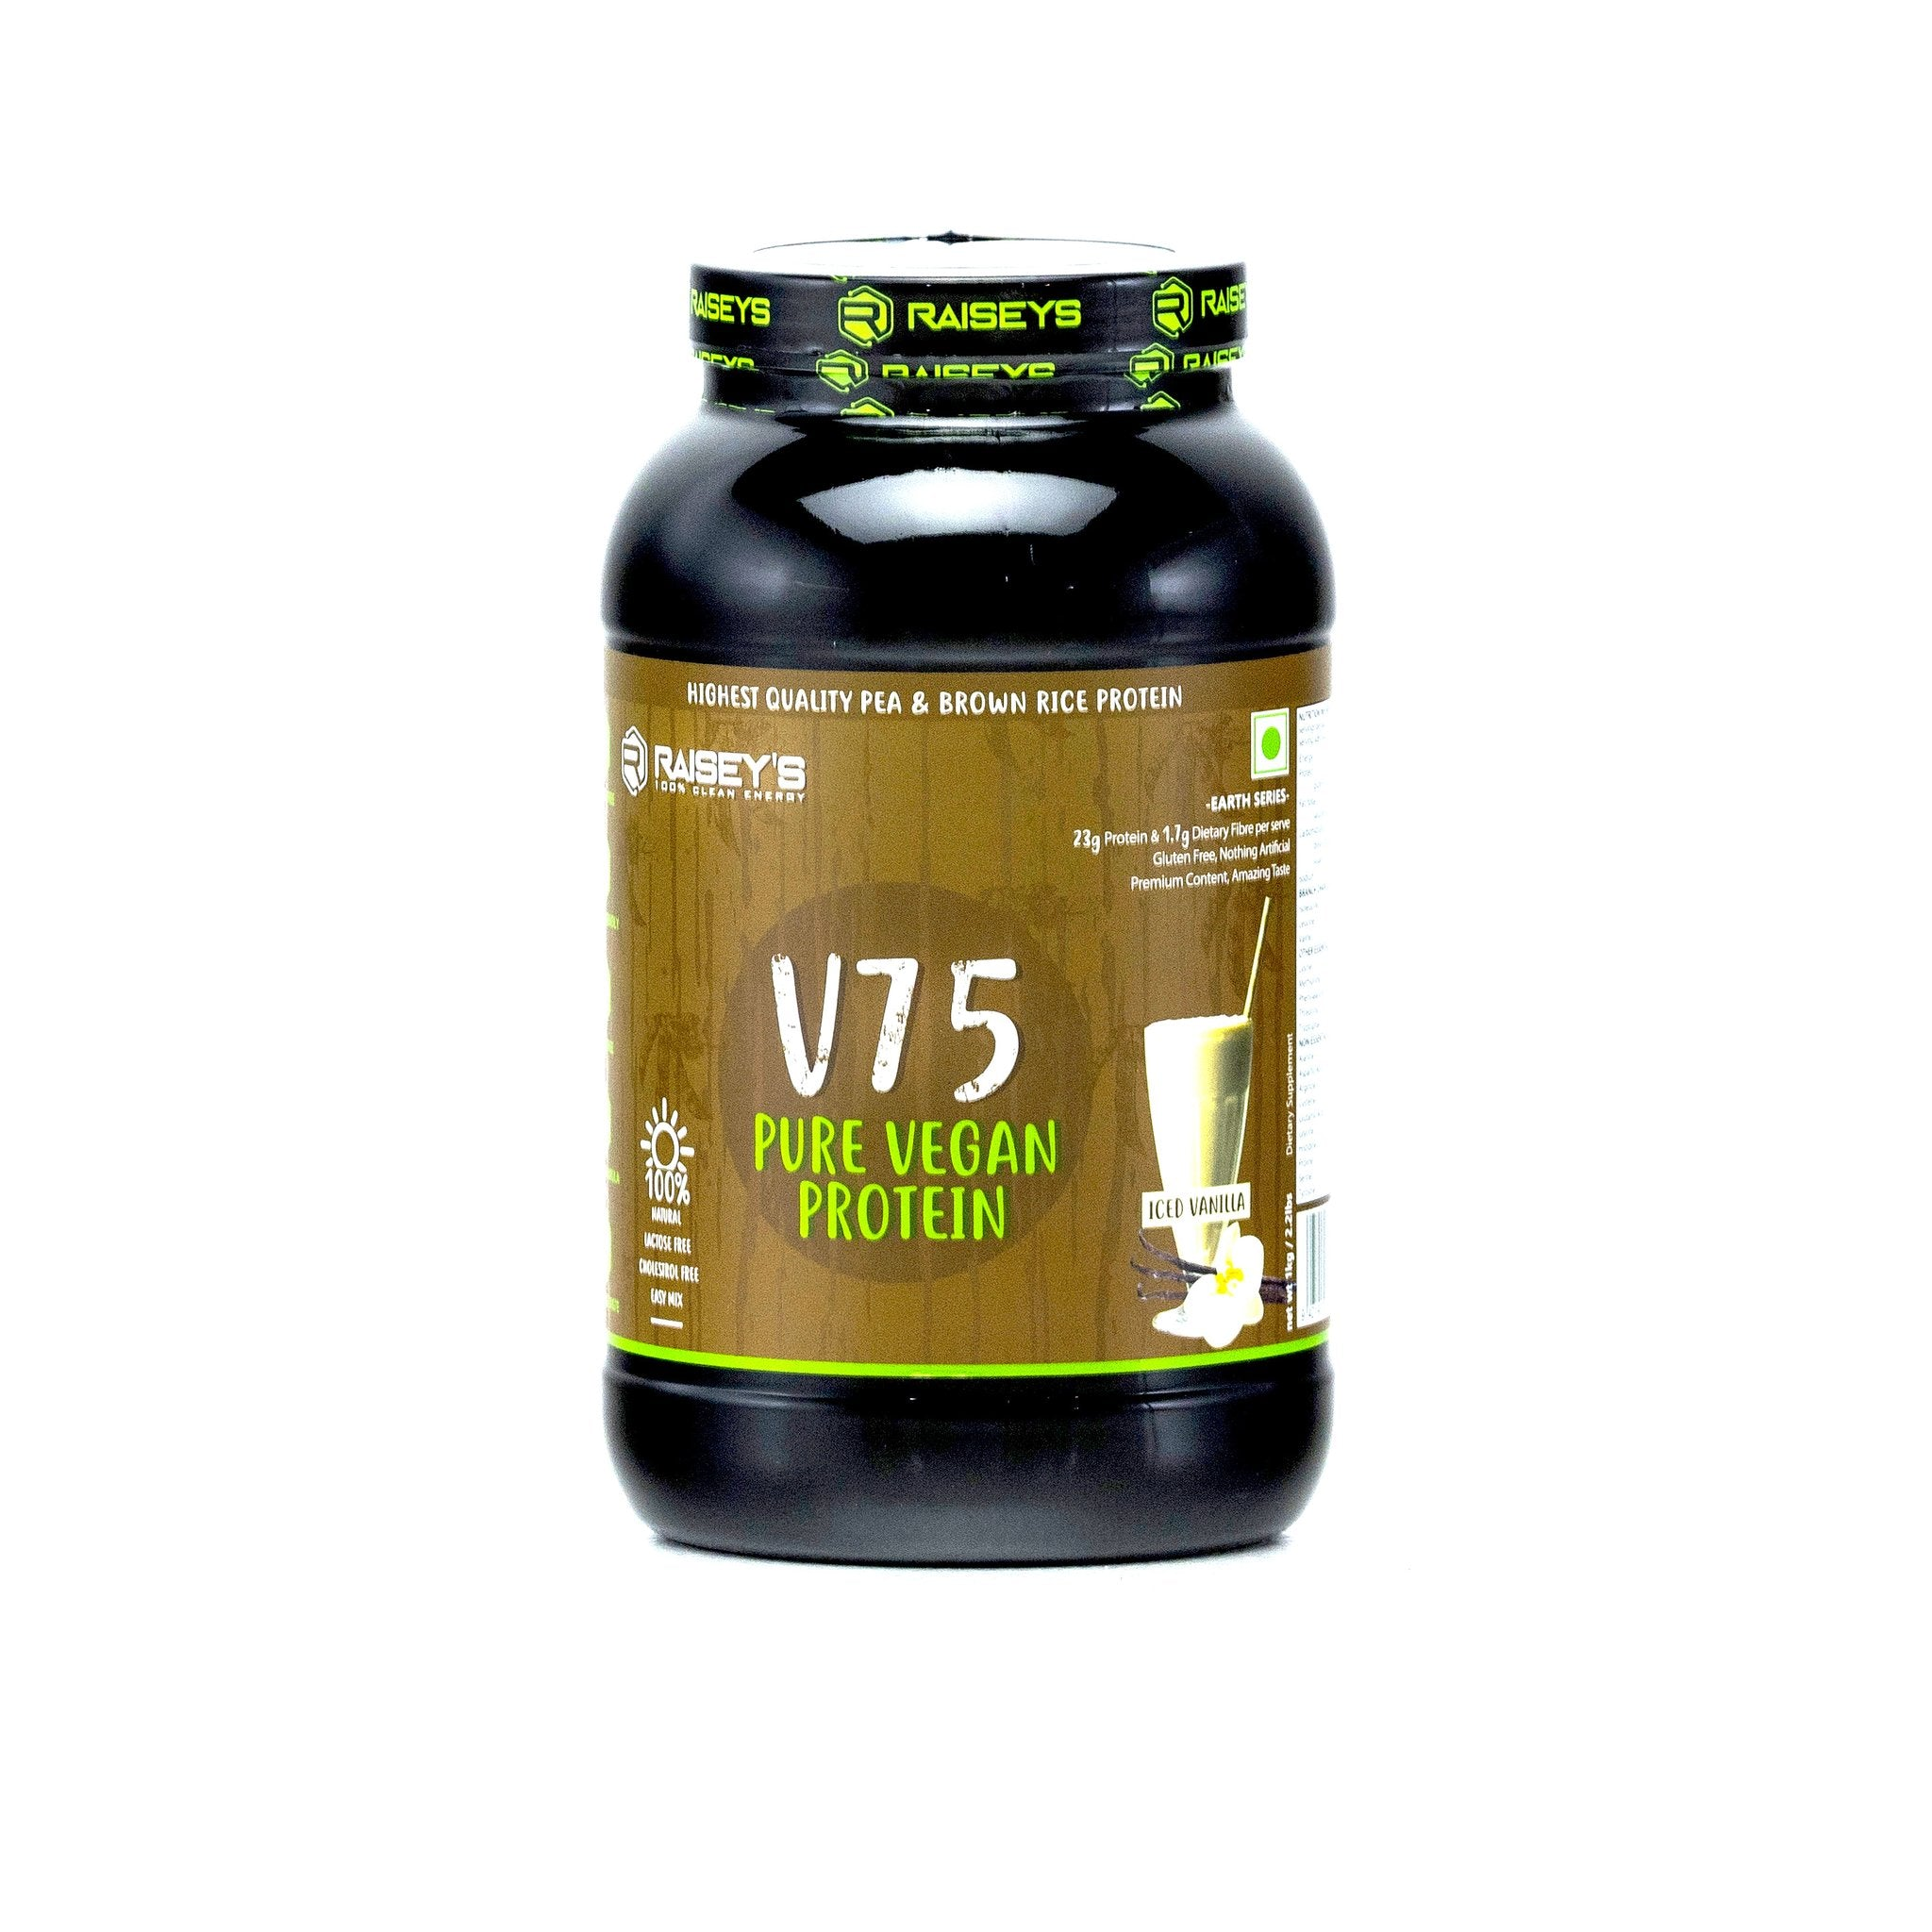 V75 VEGAN PROTEIN 1kg - Pro Supplements